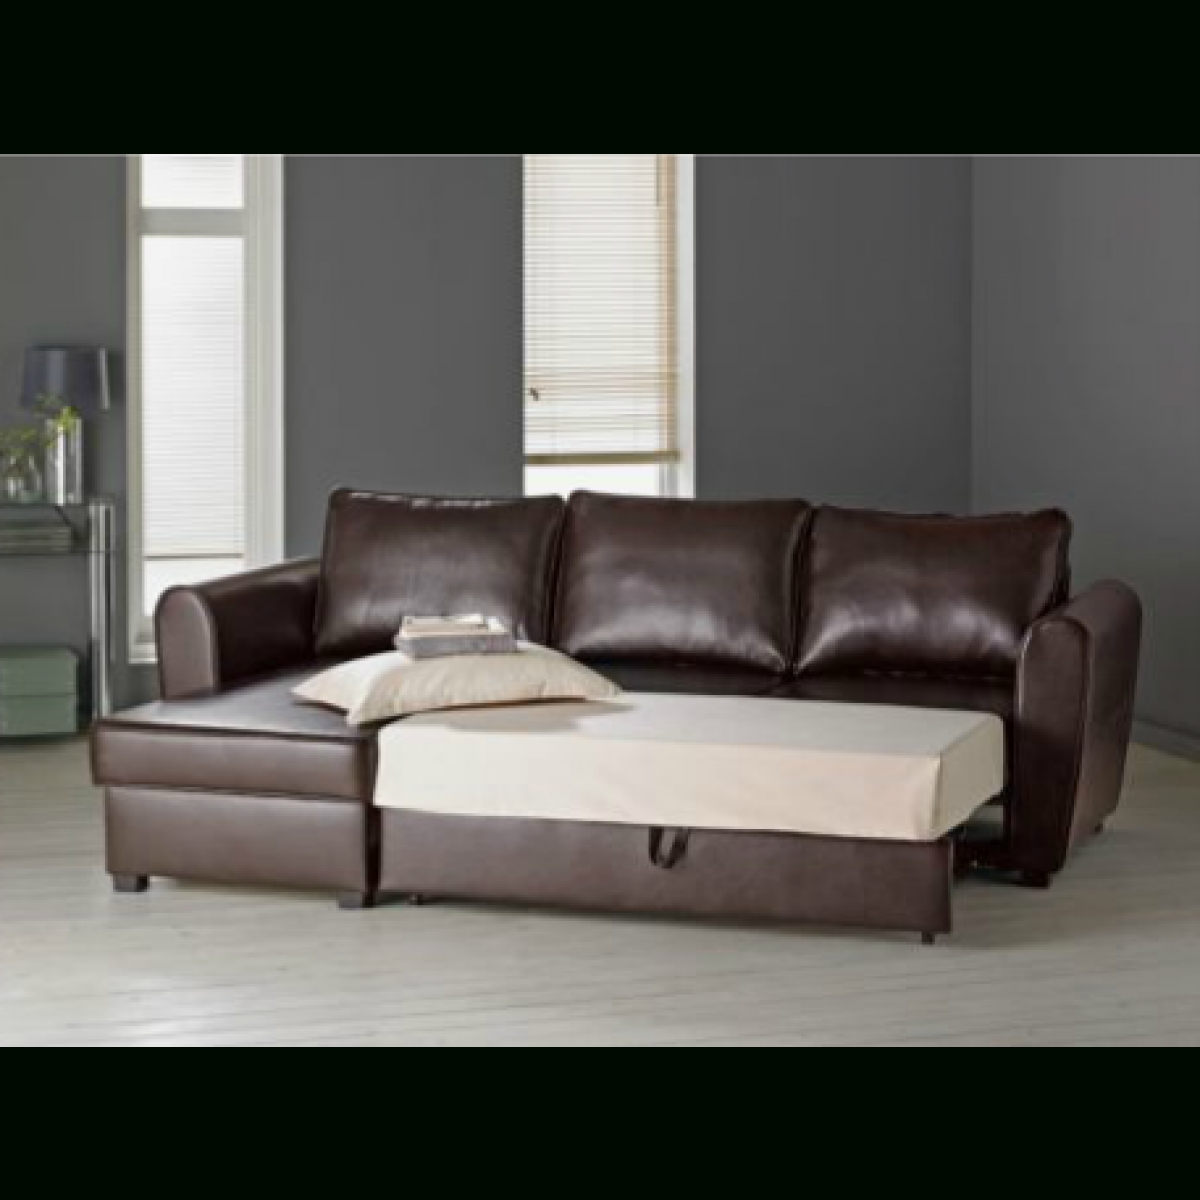 Siena Leather Effect Corner Sofa Bed With Storage  Chocolate Regarding Fashionable Storage Sofas (View 11 of 15)